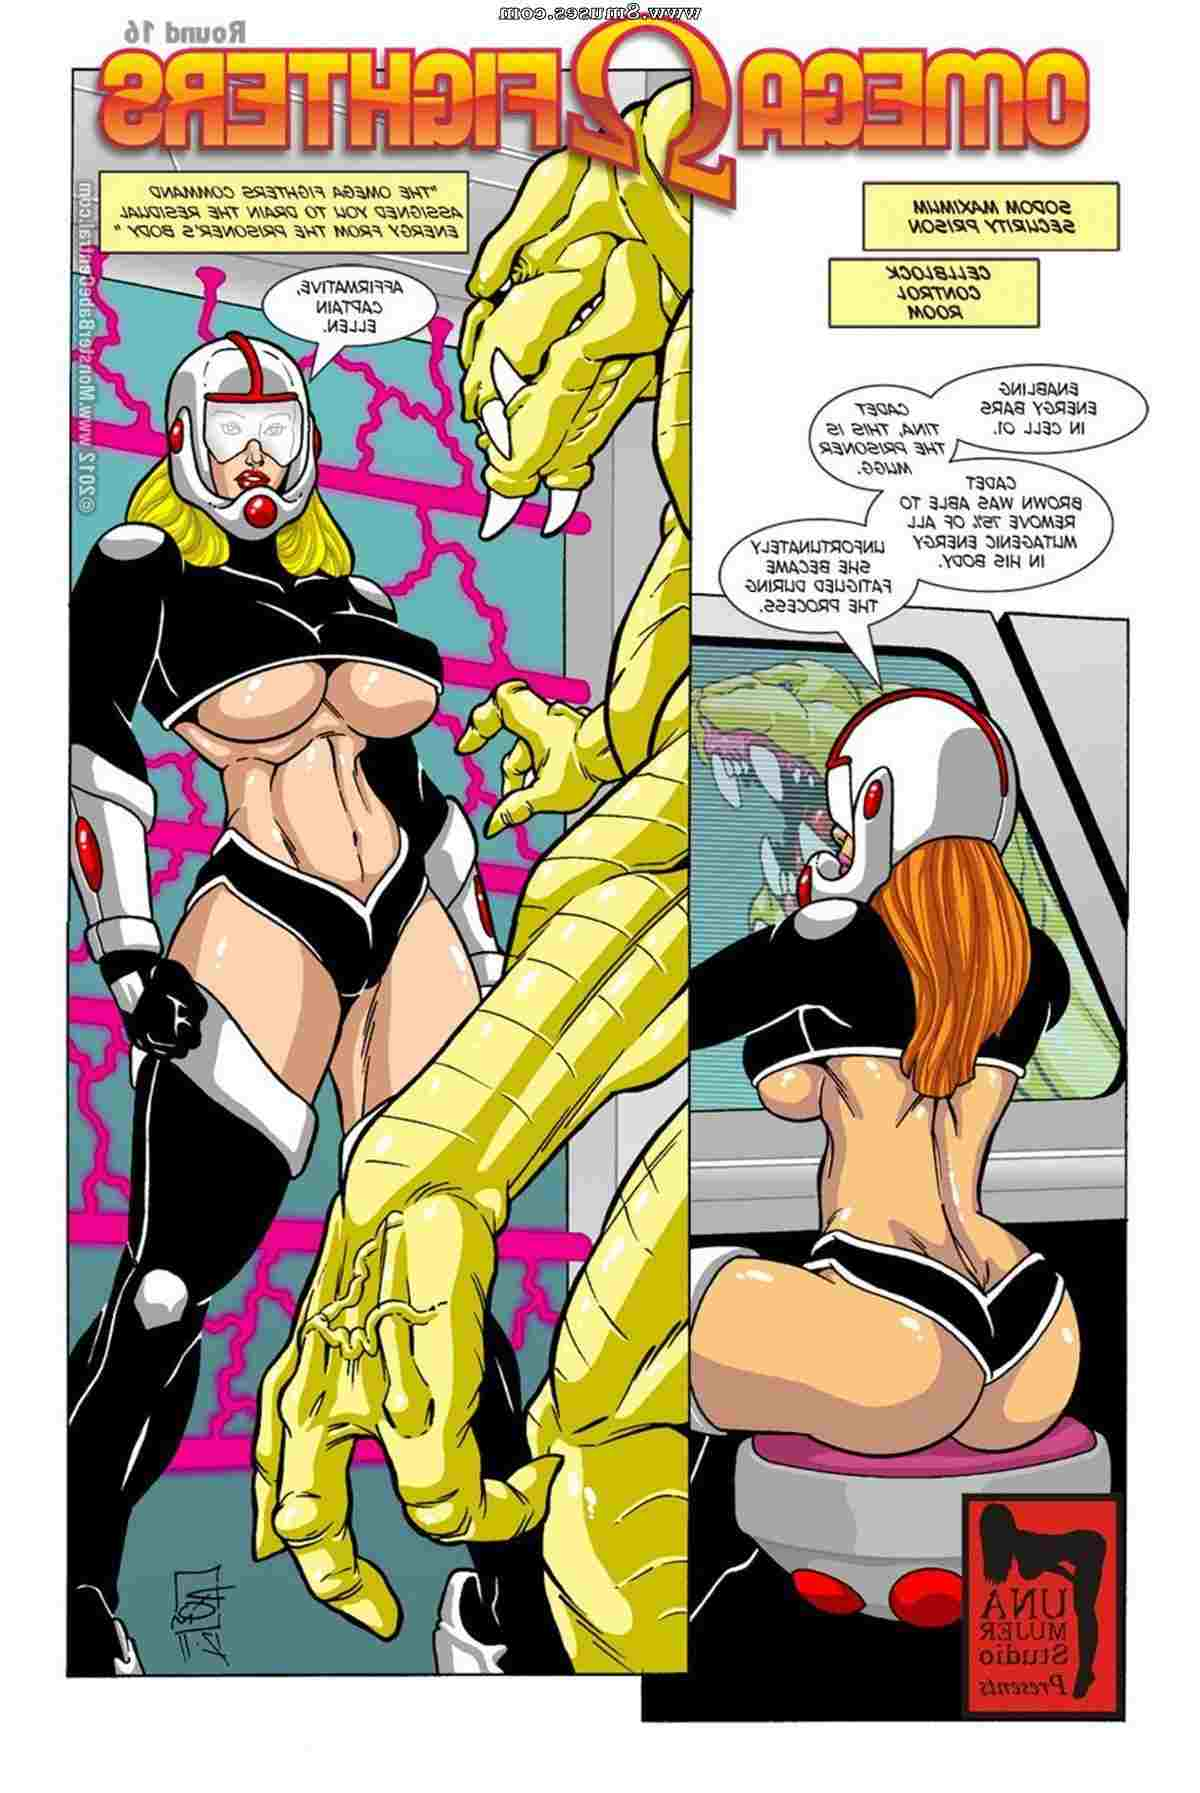 Central-Comics/Monster-Babe-Central/Omega-Fighters Omega_Fighters__8muses_-_Sex_and_Porn_Comics_76.jpg